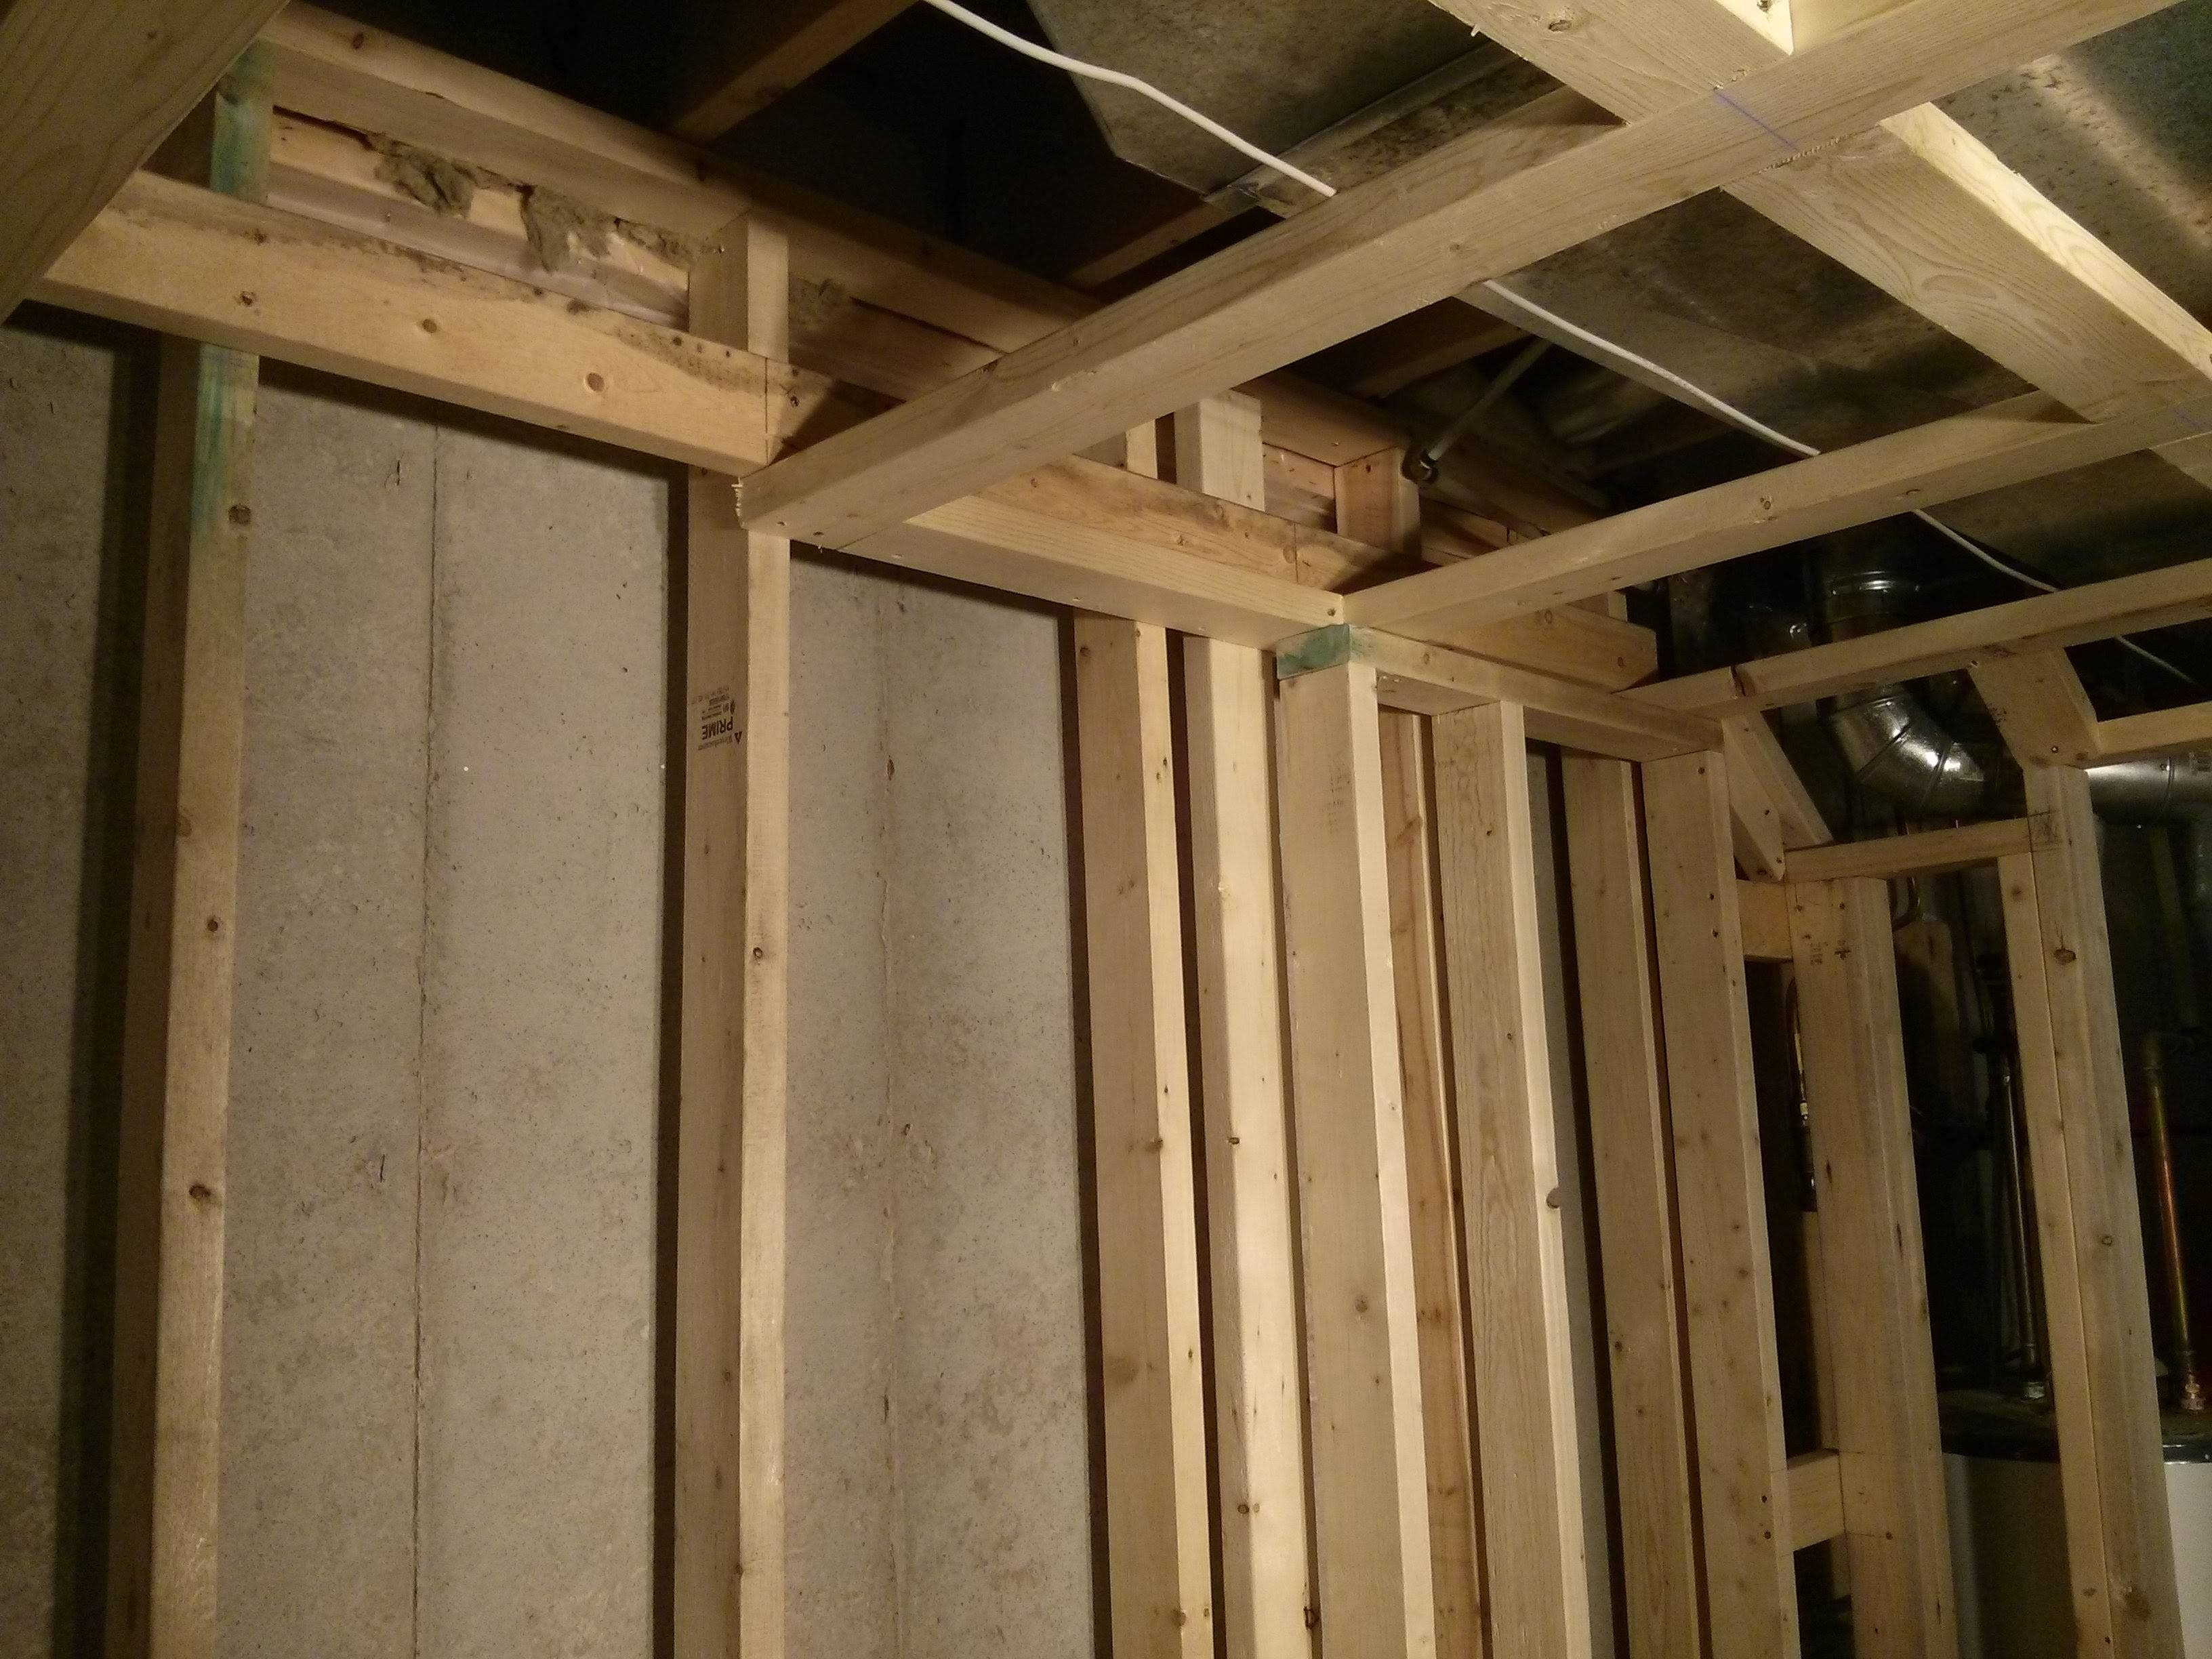 Interior Basement Wall Vapor Barrier